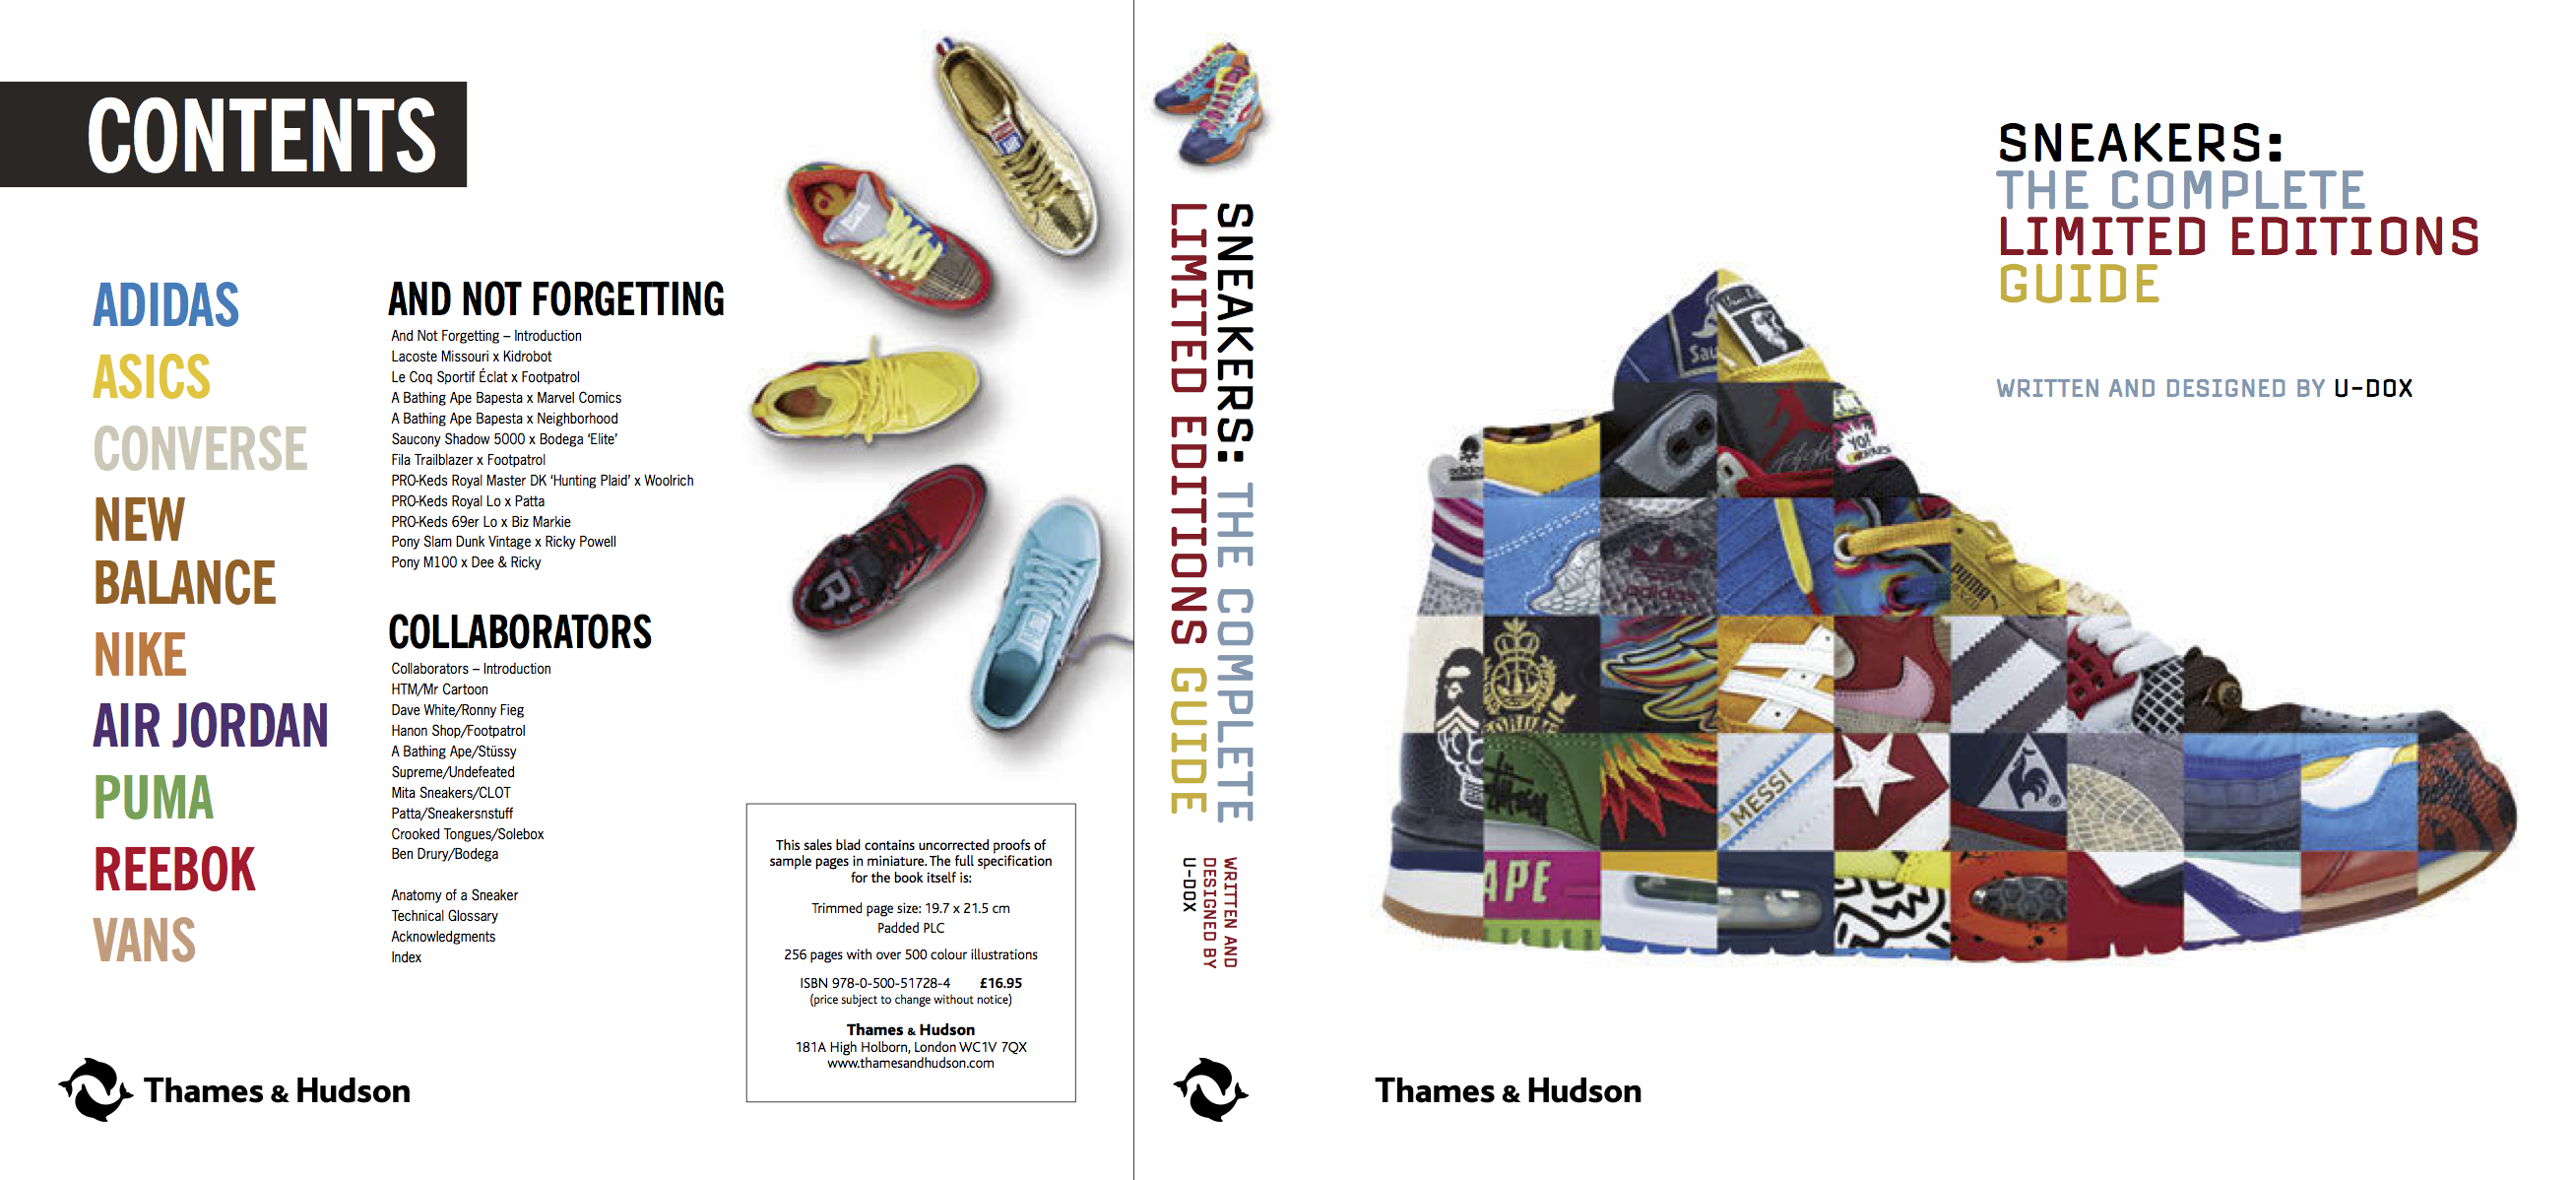 Sneakers: The Complete Limited Editions Guide - Trapped